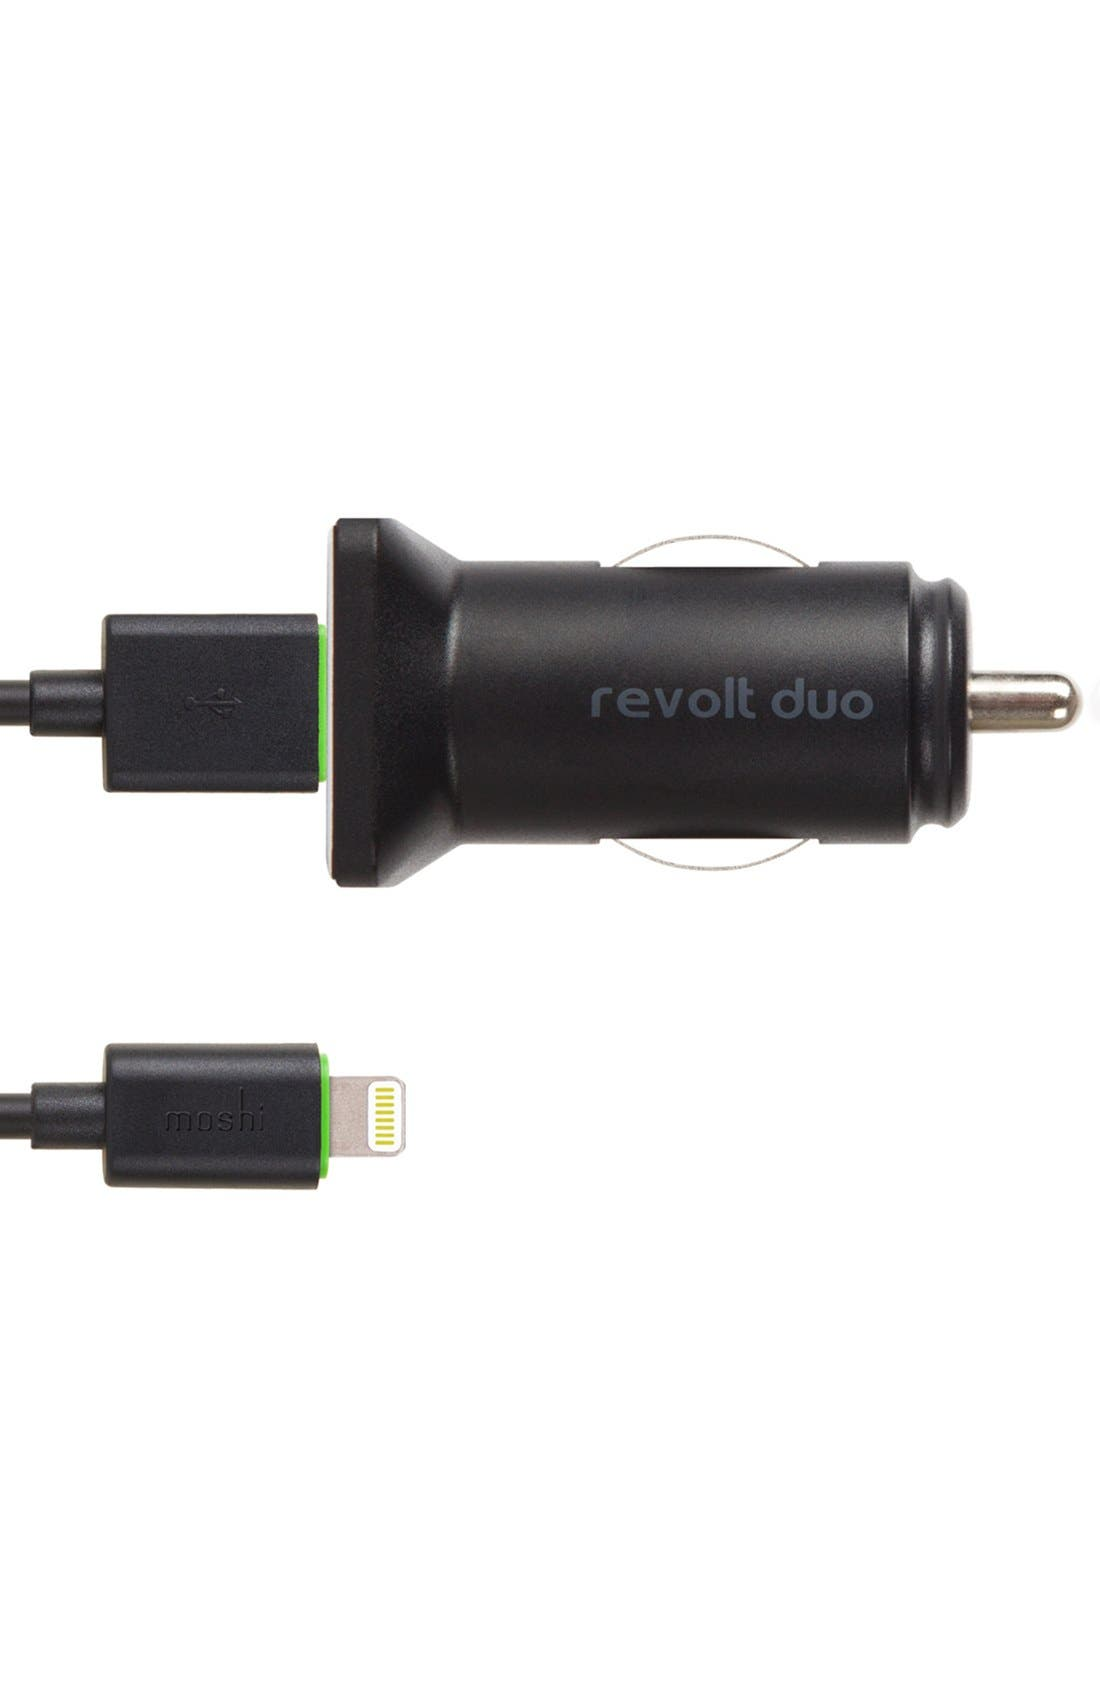 Alternate Image 1 Selected - Moshi 'Revolt Duo' 20W USB Car Charger with Lightning Cable